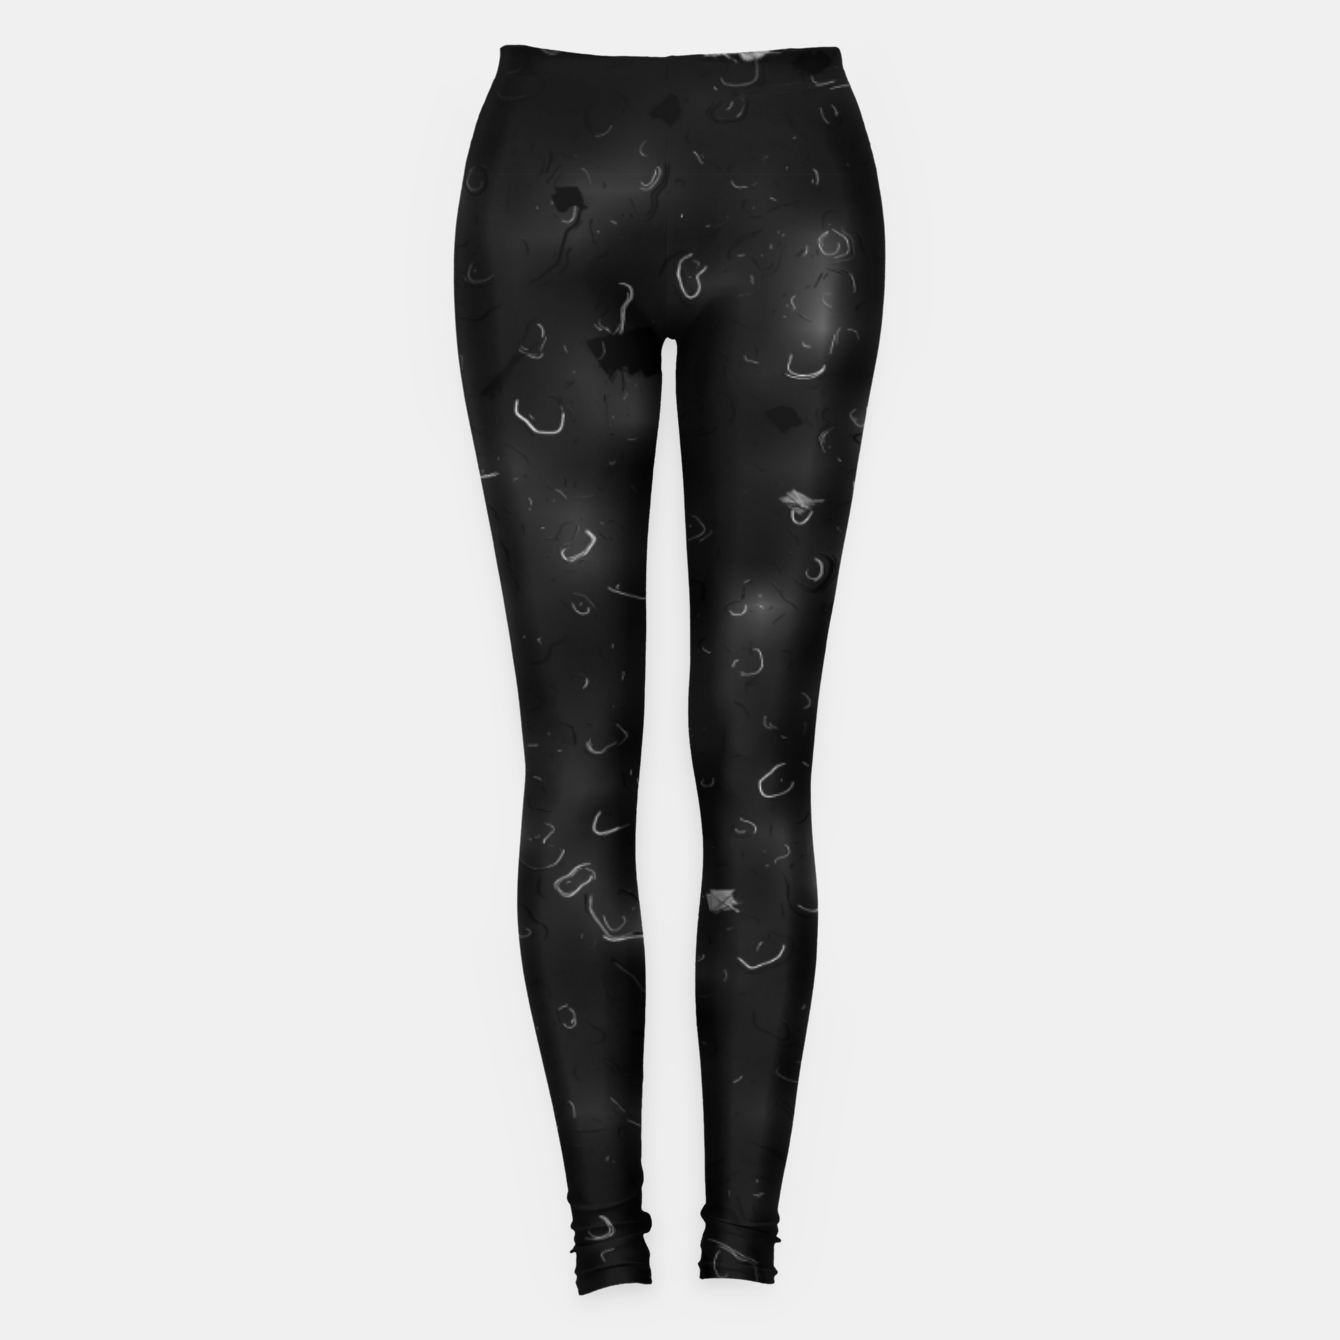 Image de painting texture abstract background in black and white Leggings - Live Heroes